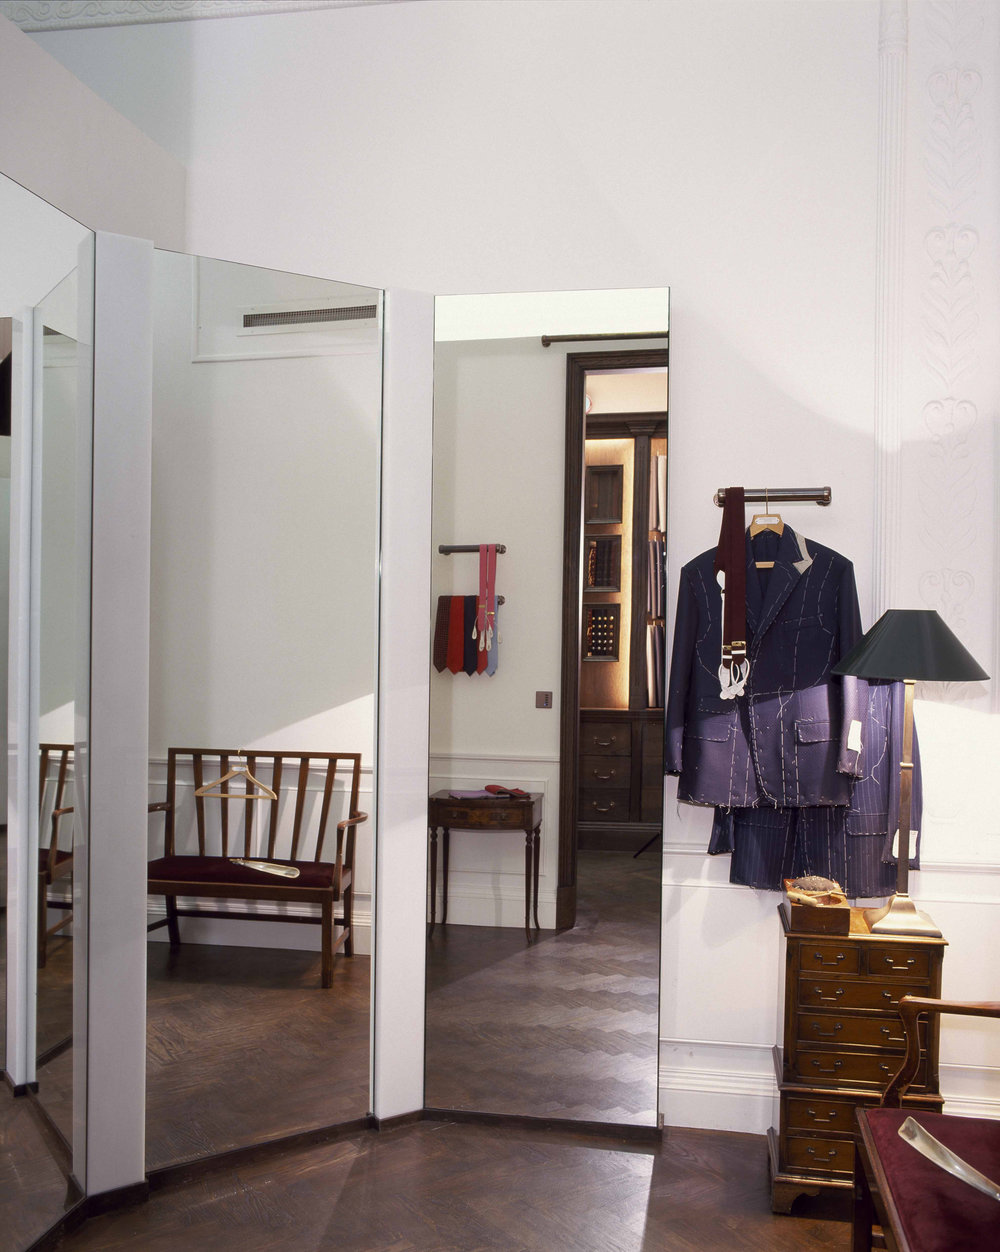 Anderson & Sheppard Fitting Rooms.jpg